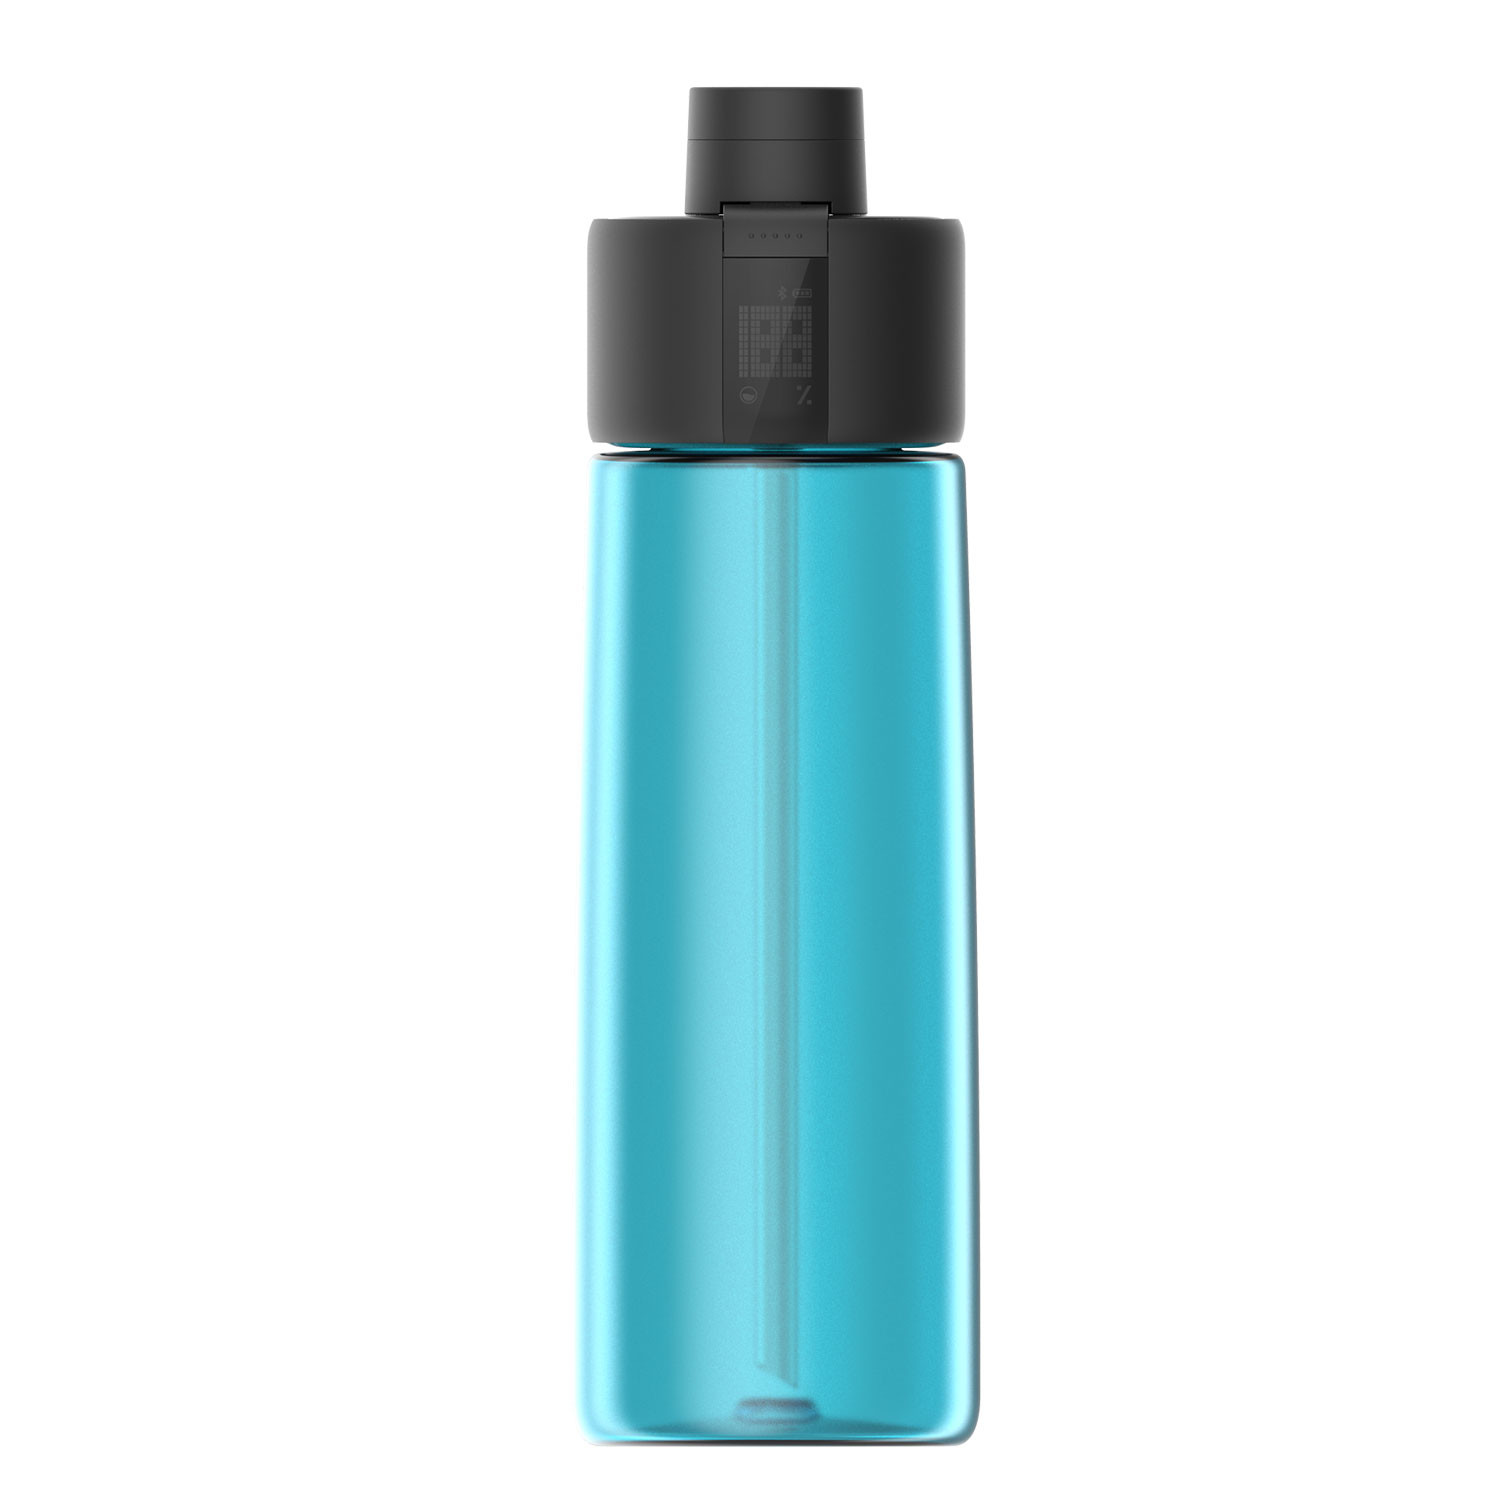 Gene smart sports bottle black moikit touch of modern for What is touchofmodern